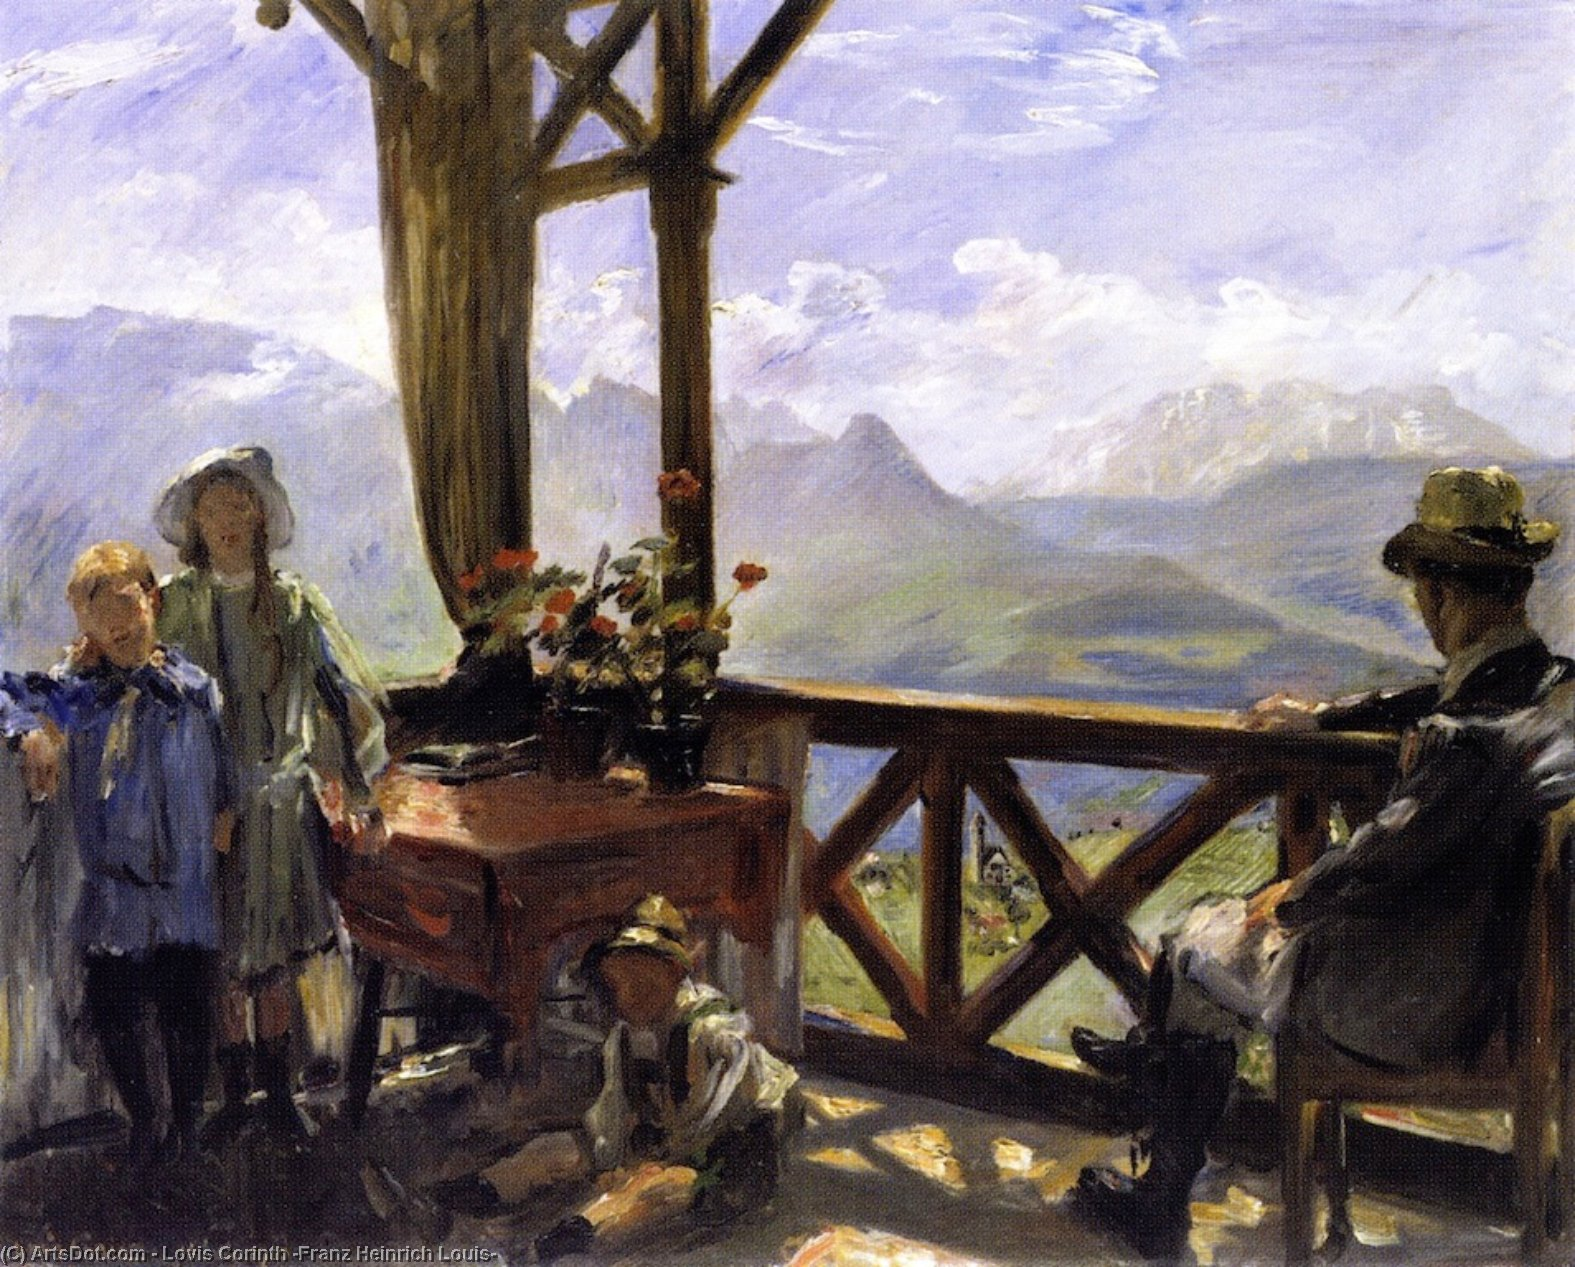 Terrace in Klobenstein, Tyrol, Oil On Canvas by Lovis Corinth (Franz Heinrich Louis) (1858-1925, Netherlands)